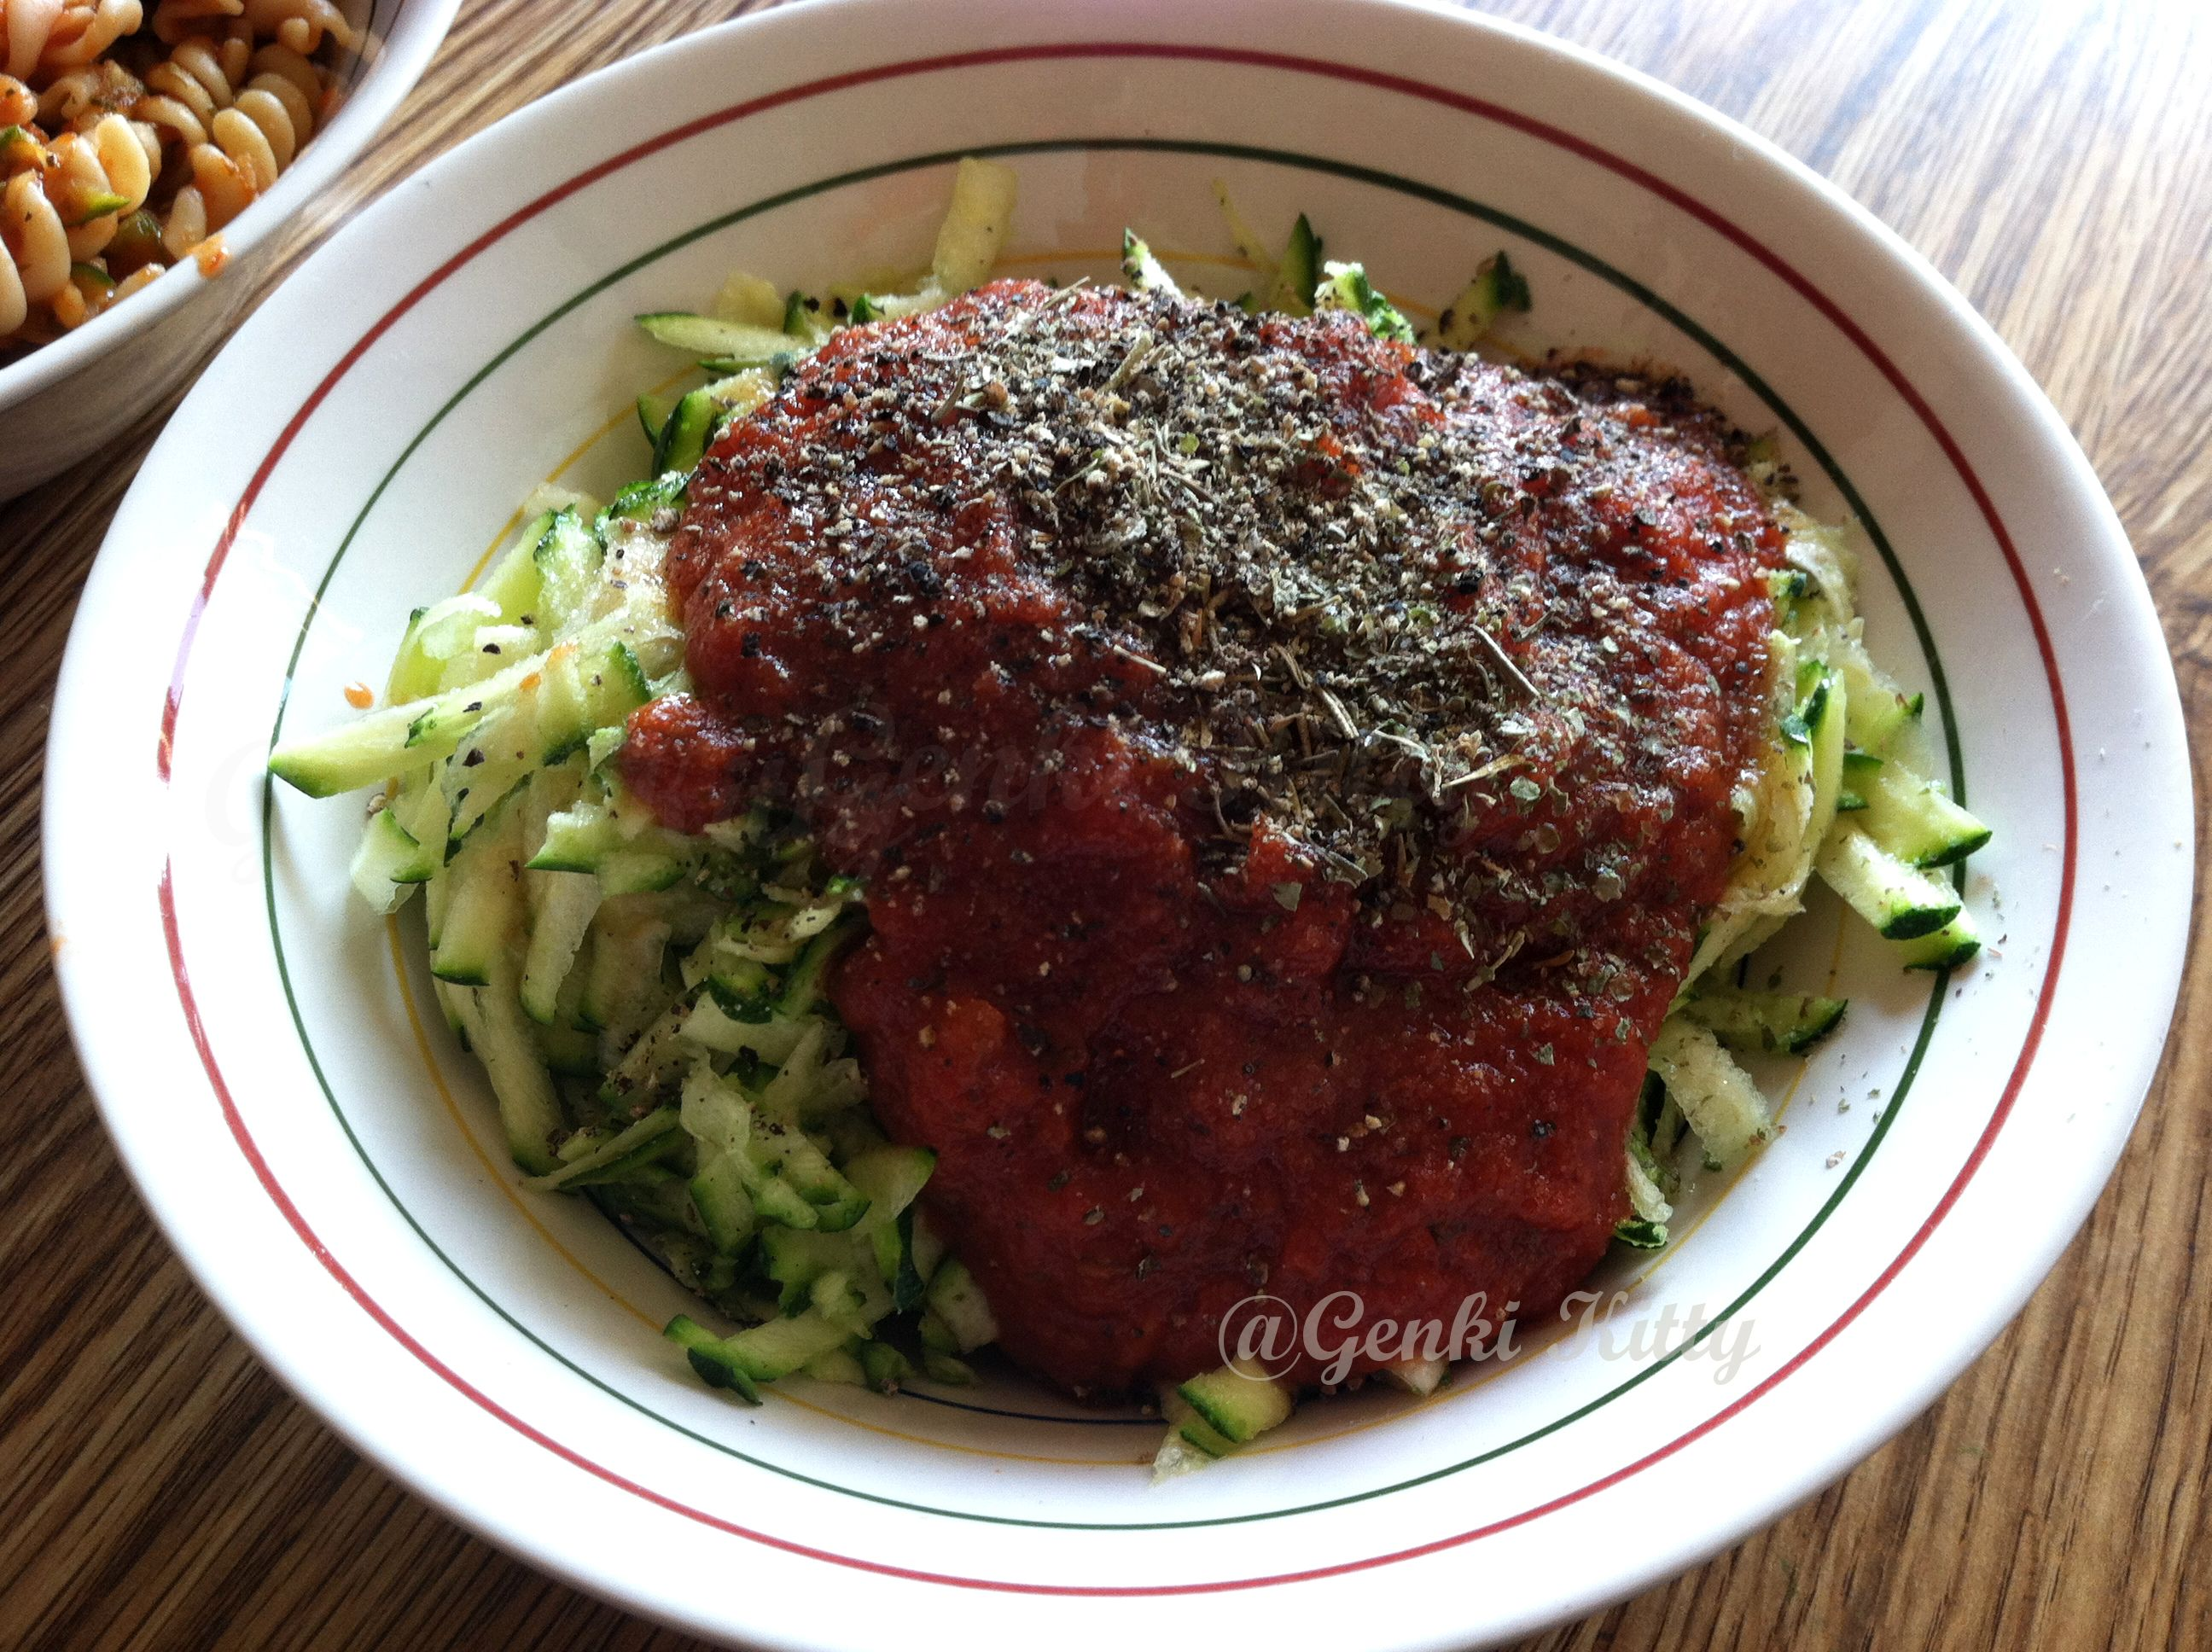 Zucchini noodles with tomato sauce on top.  #genkikitty #vegan #zucchini #noodle #pasta #healthy #recipe